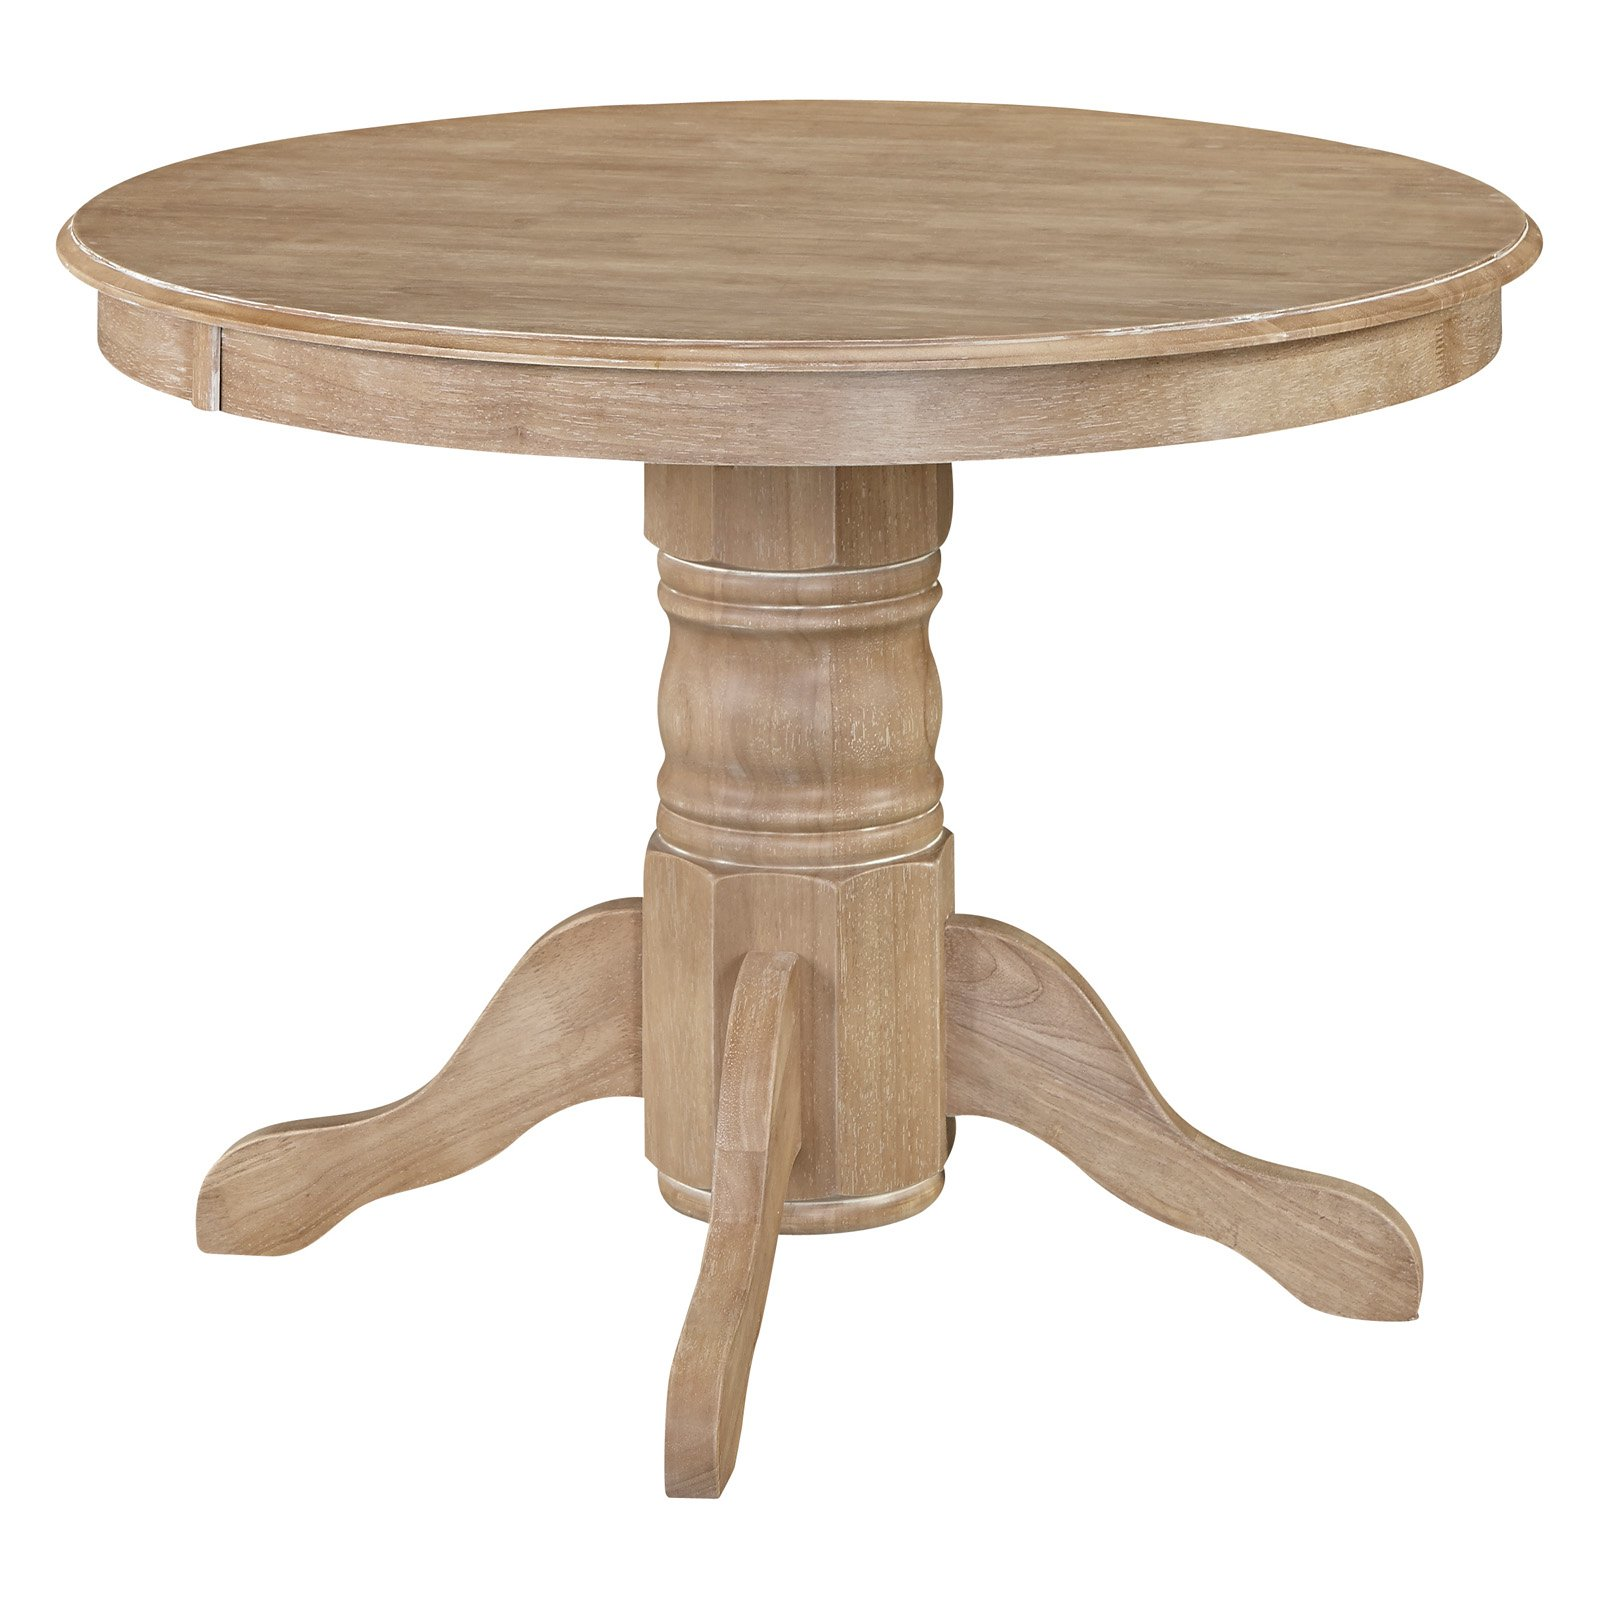 Classic Pedestal Dining Table in White Wash Finish